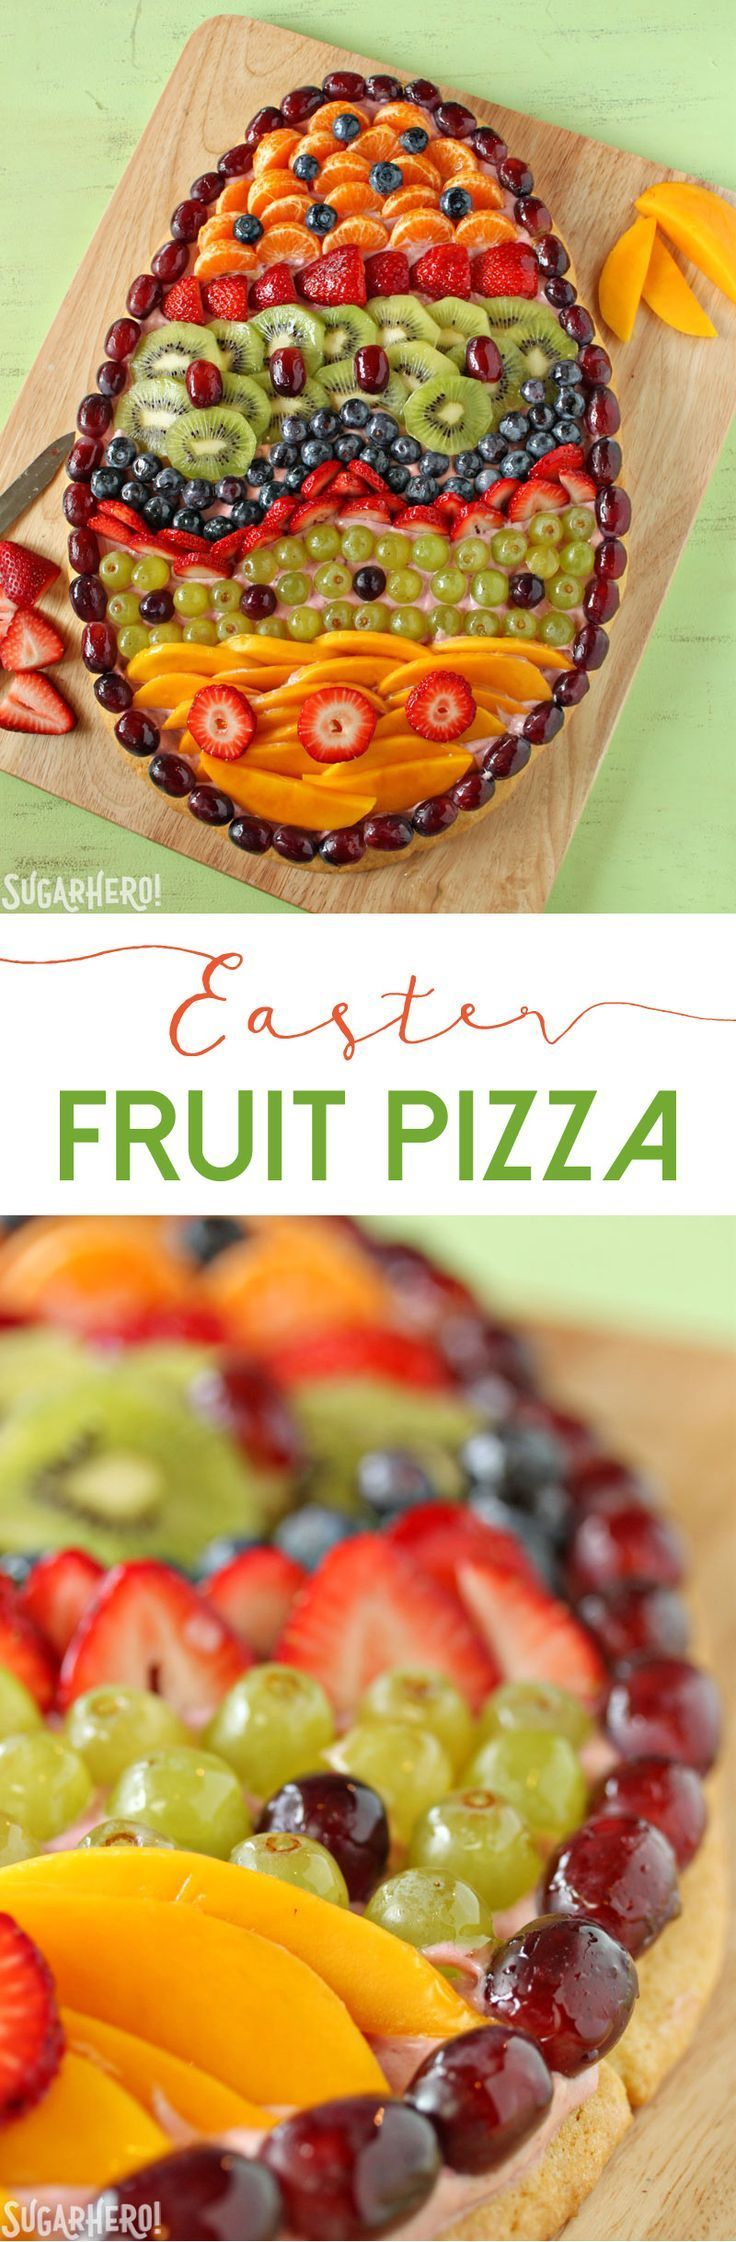 Fruit Pizza in the shape of an Easter egg. This is the best spring breakfast and brunch recipe! | From SugarHero.com